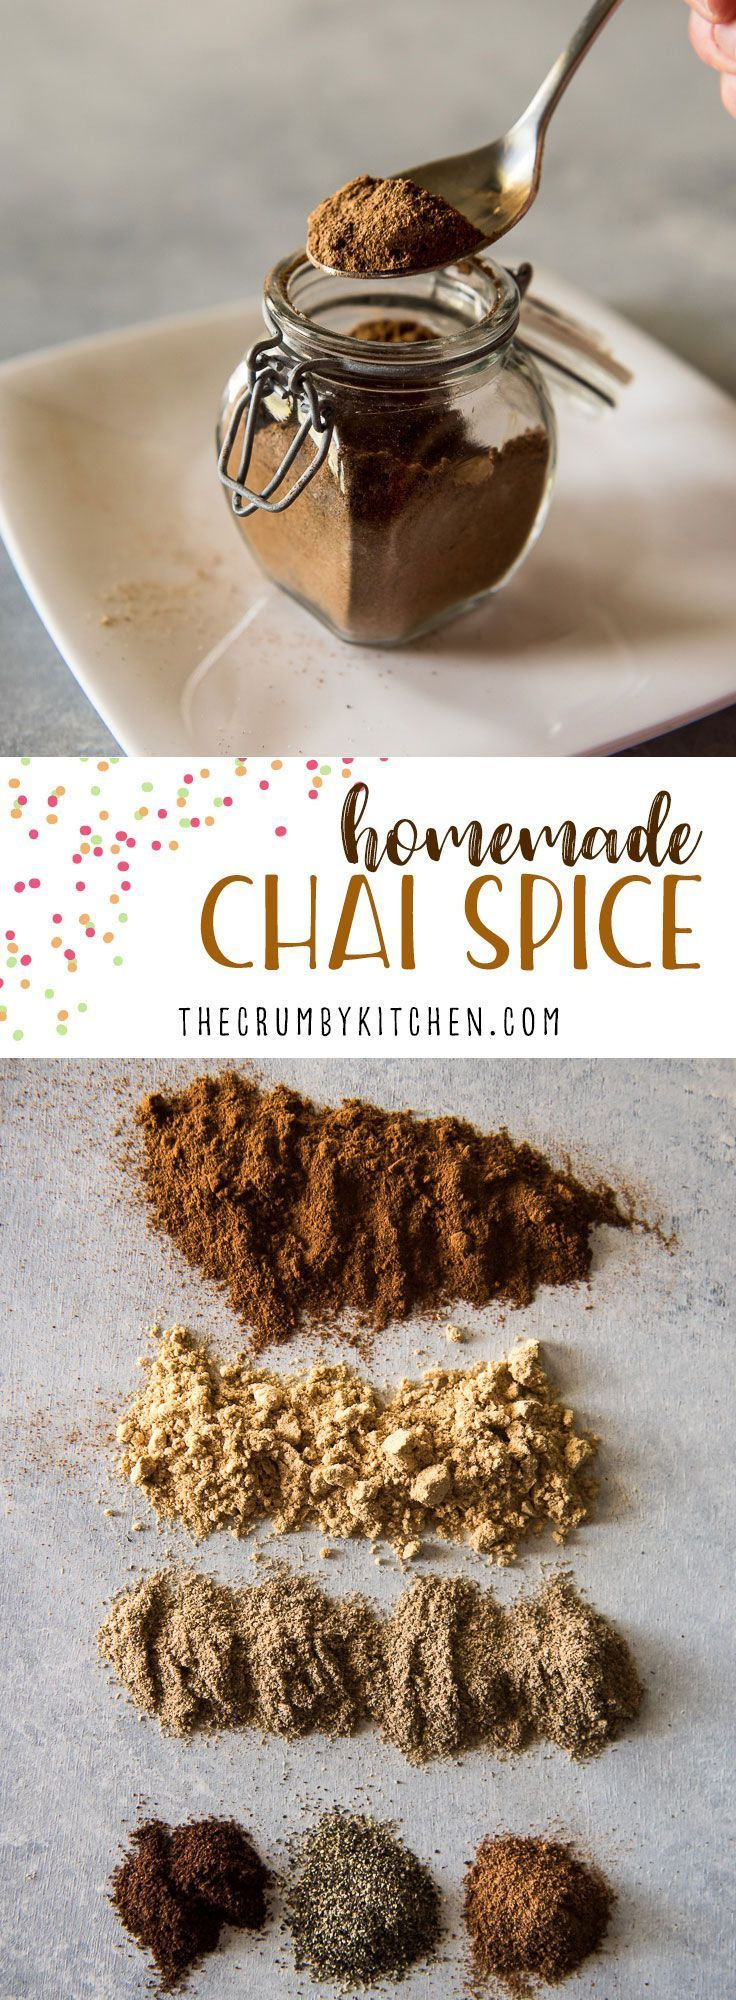 A versatile spice blend inspired by an Indian tea variety, this homemadechai spicemix can also be used on toast, in baked goods, or as a unique meat rub.